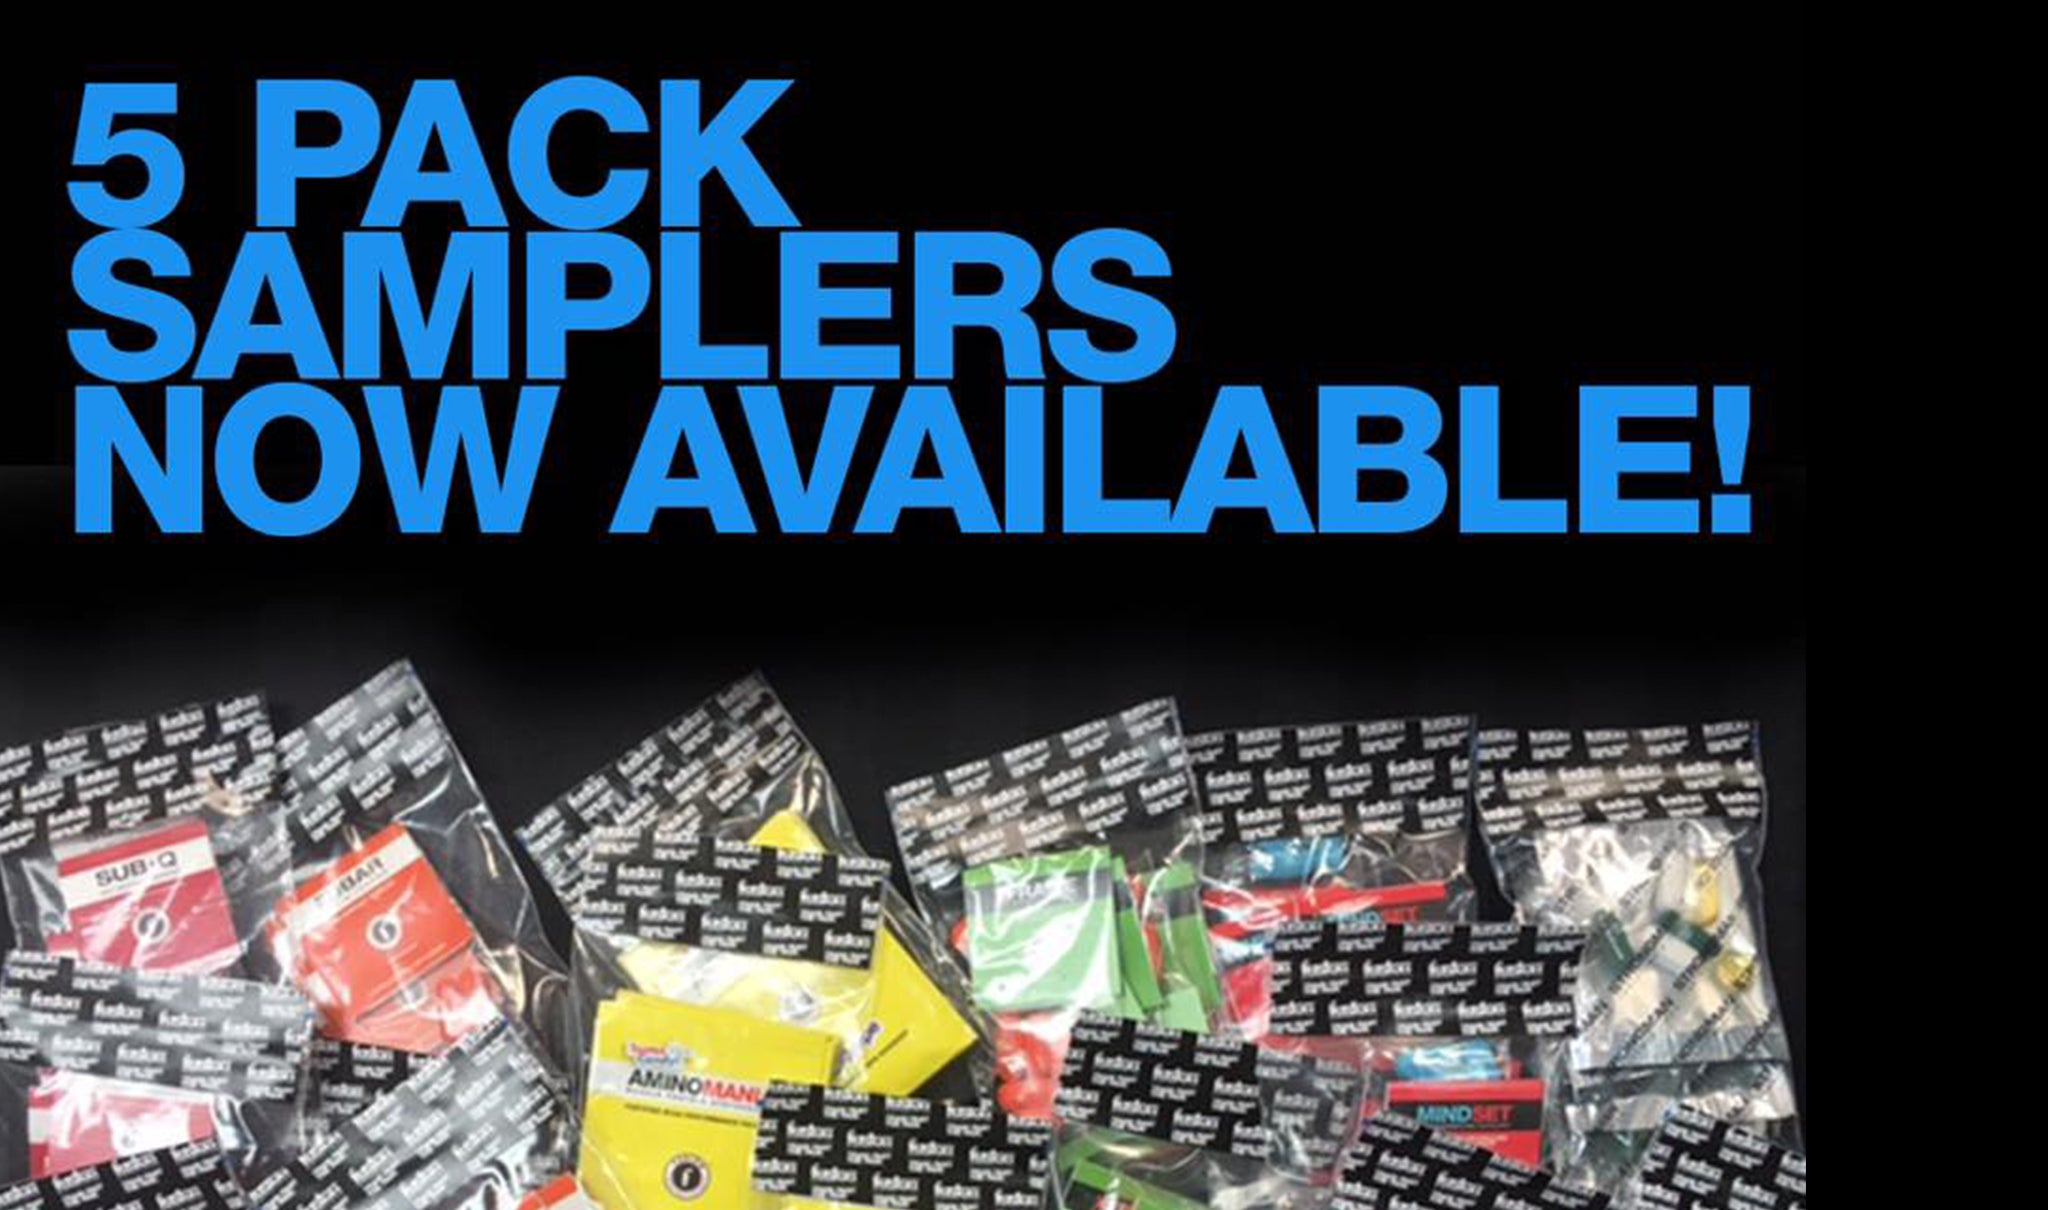 5 PACK SAMPLERS NOW AVAILABLE.